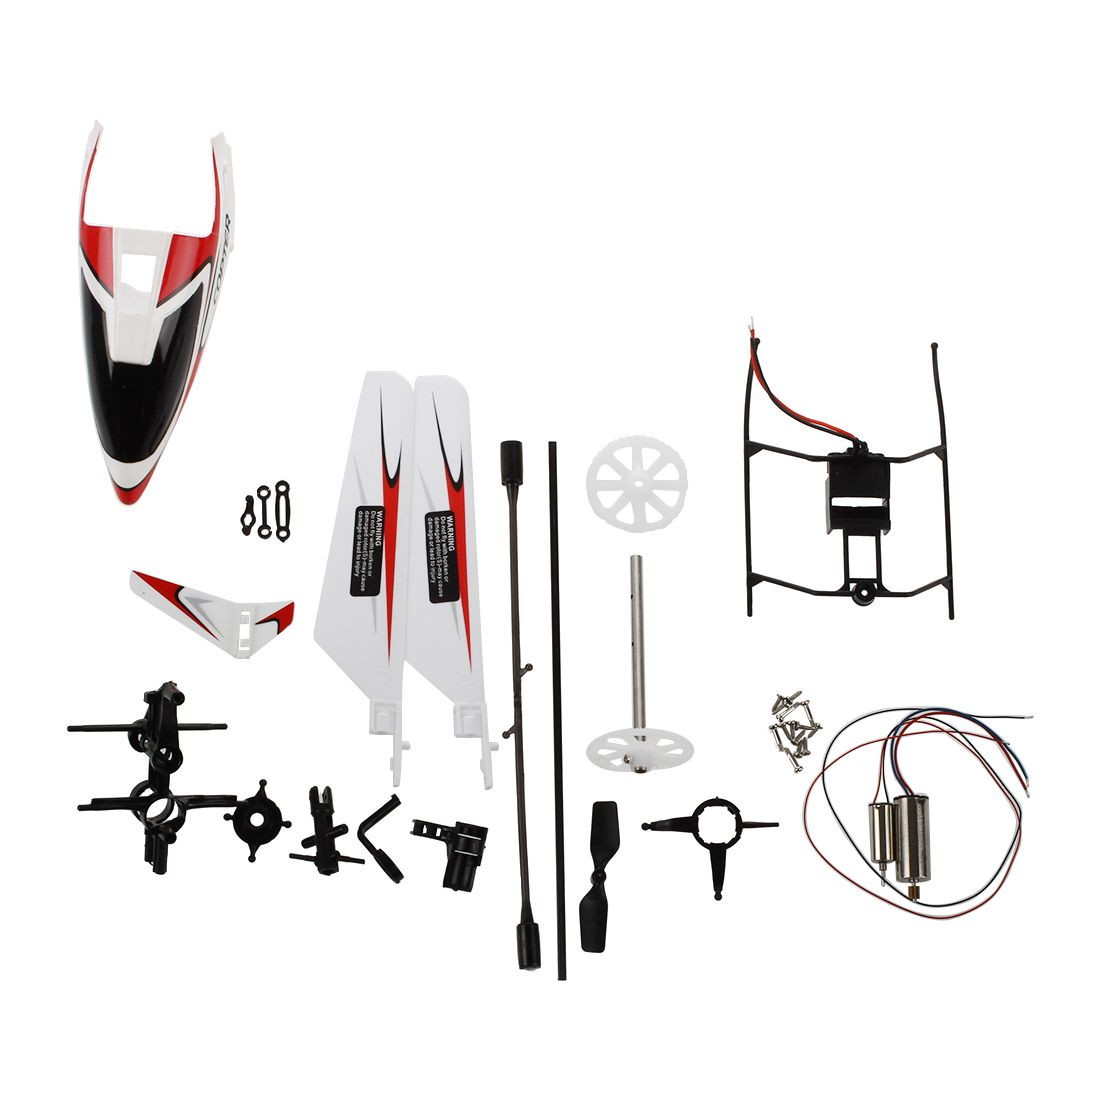 цена на WLtoys V911 Helicopter Accessories Kit with Engines/Screws Toys for Children